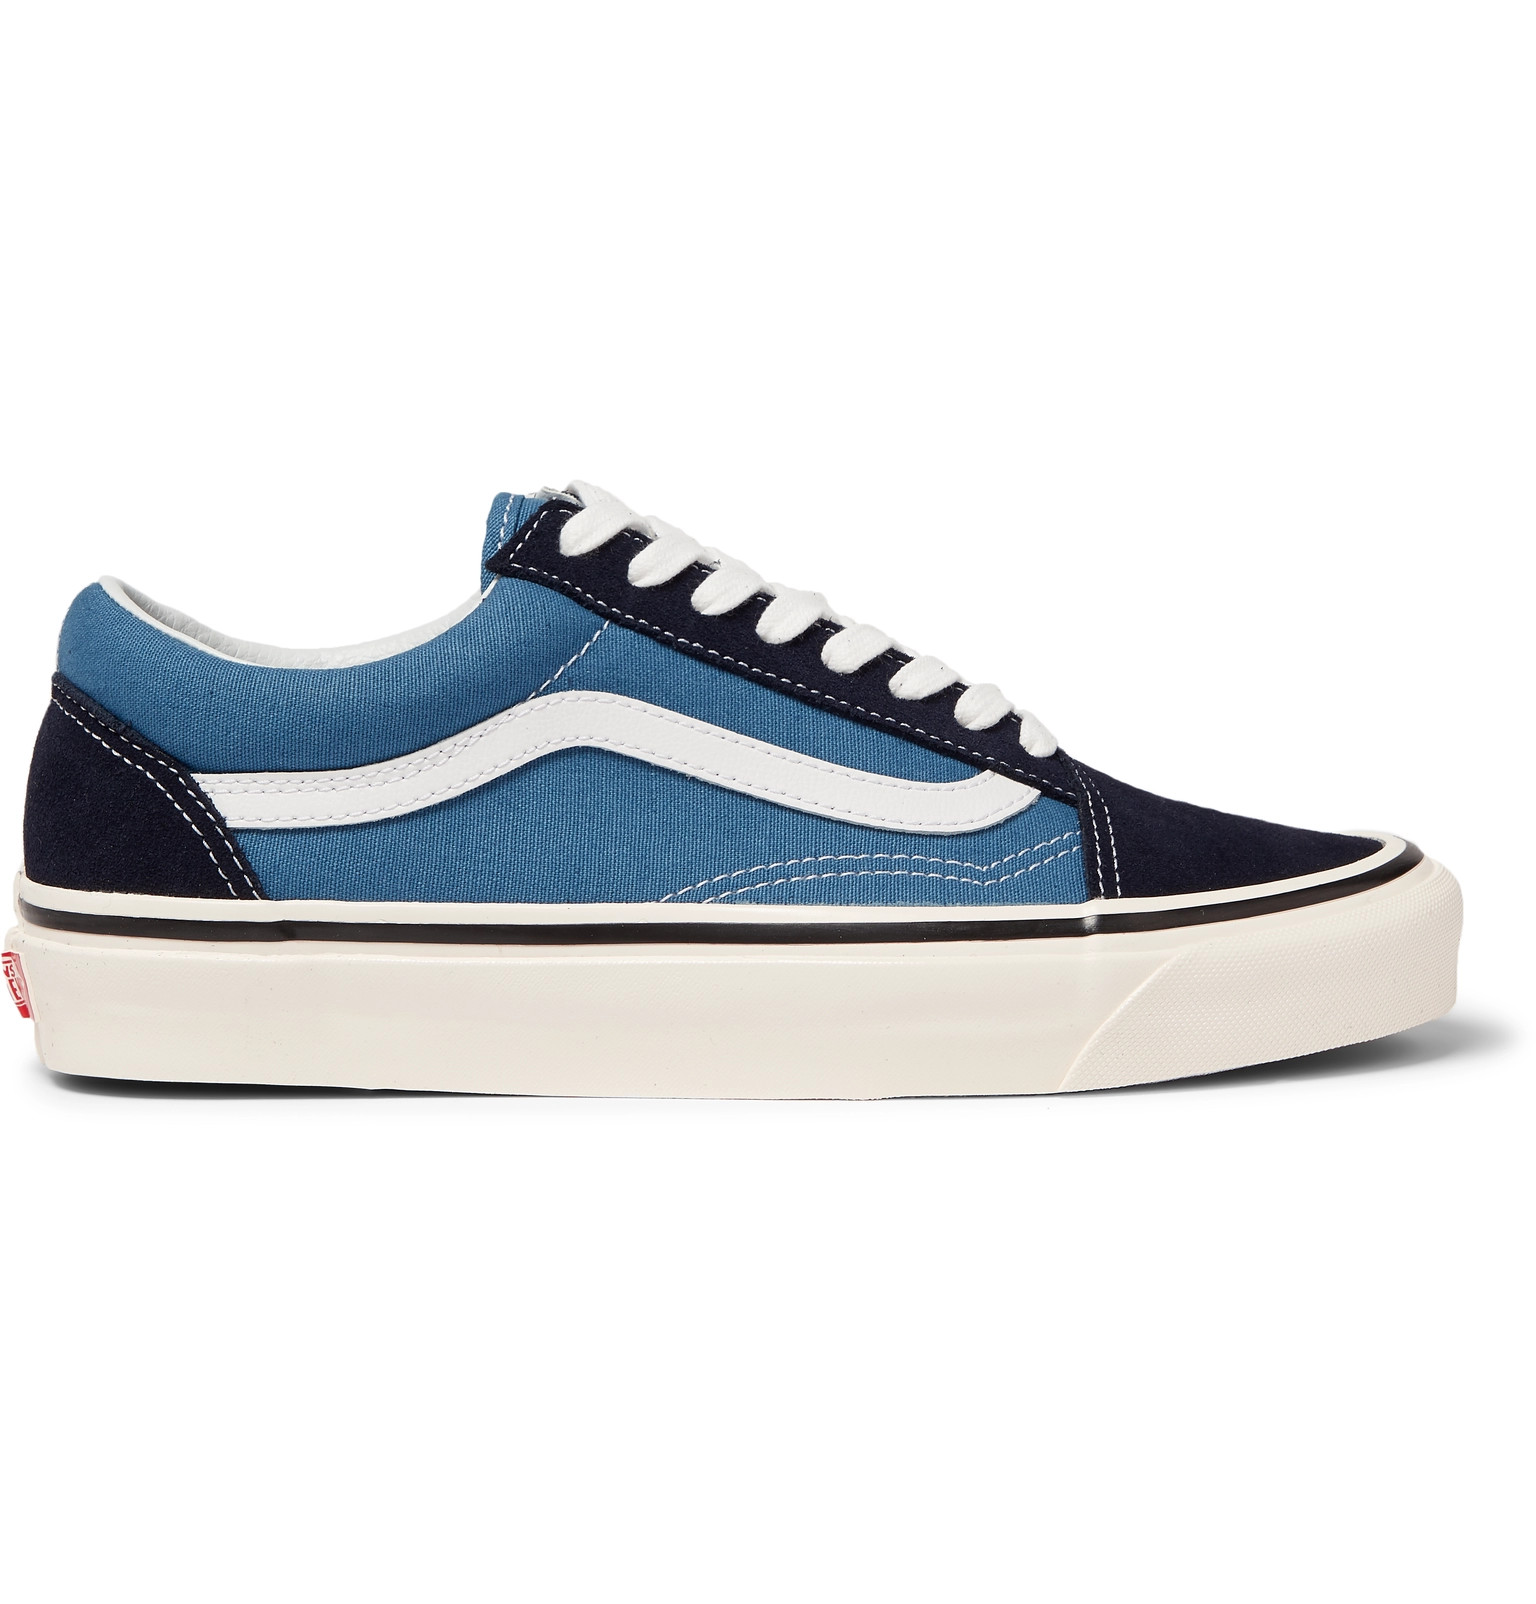 99f59956e9 VansAnaheim Factory UA Old Skool 36 DX Leather-Trimmed Canvas and Suede  Sneakers